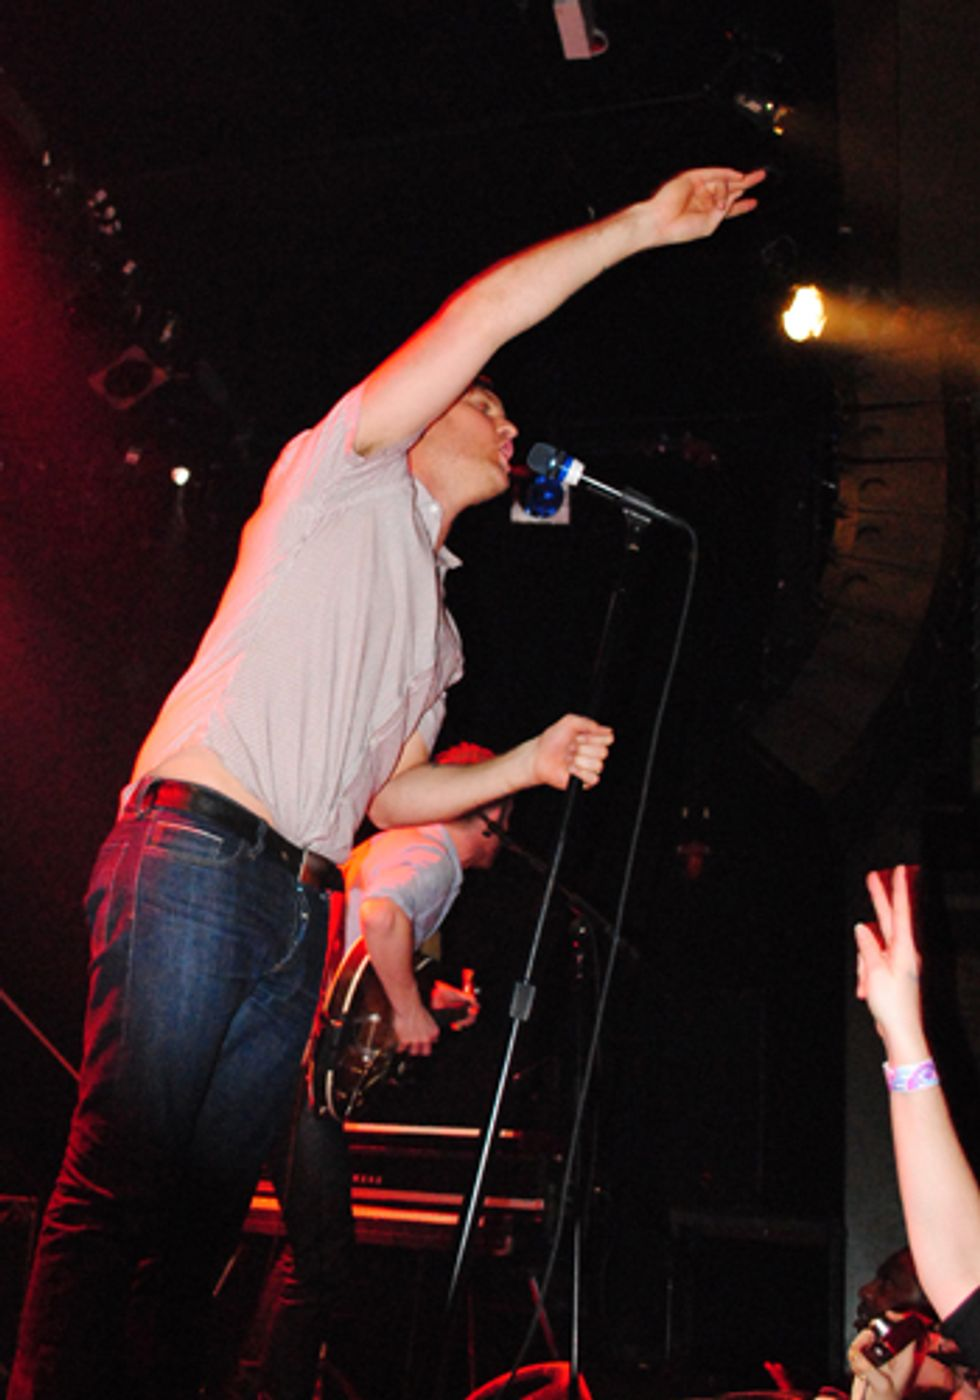 Cold War Kids Make Up For Their Skimpy Tour at Terminal 5